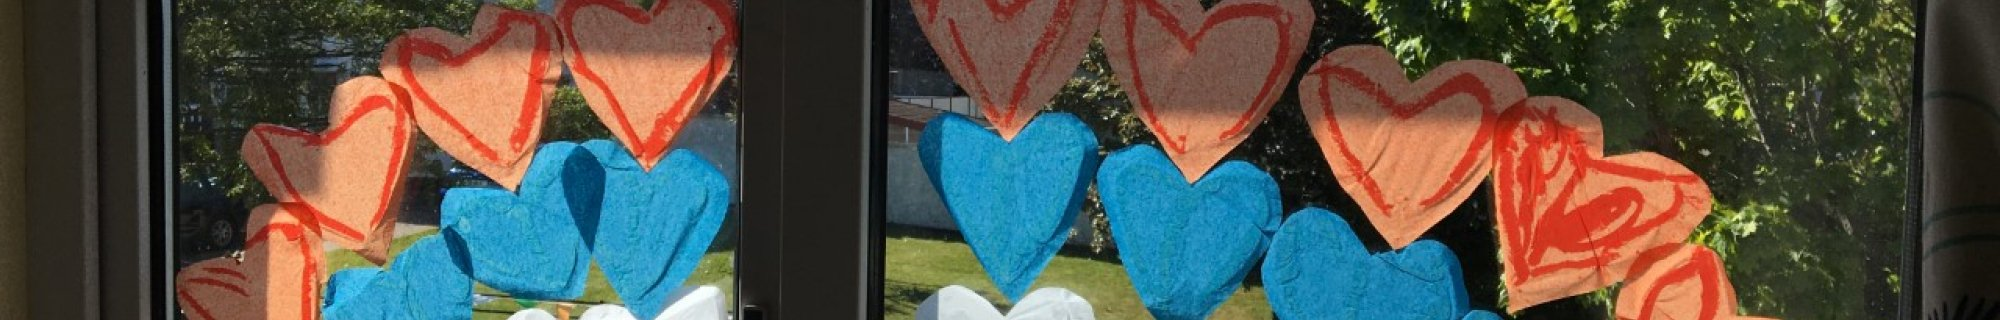 Image of window with hearts